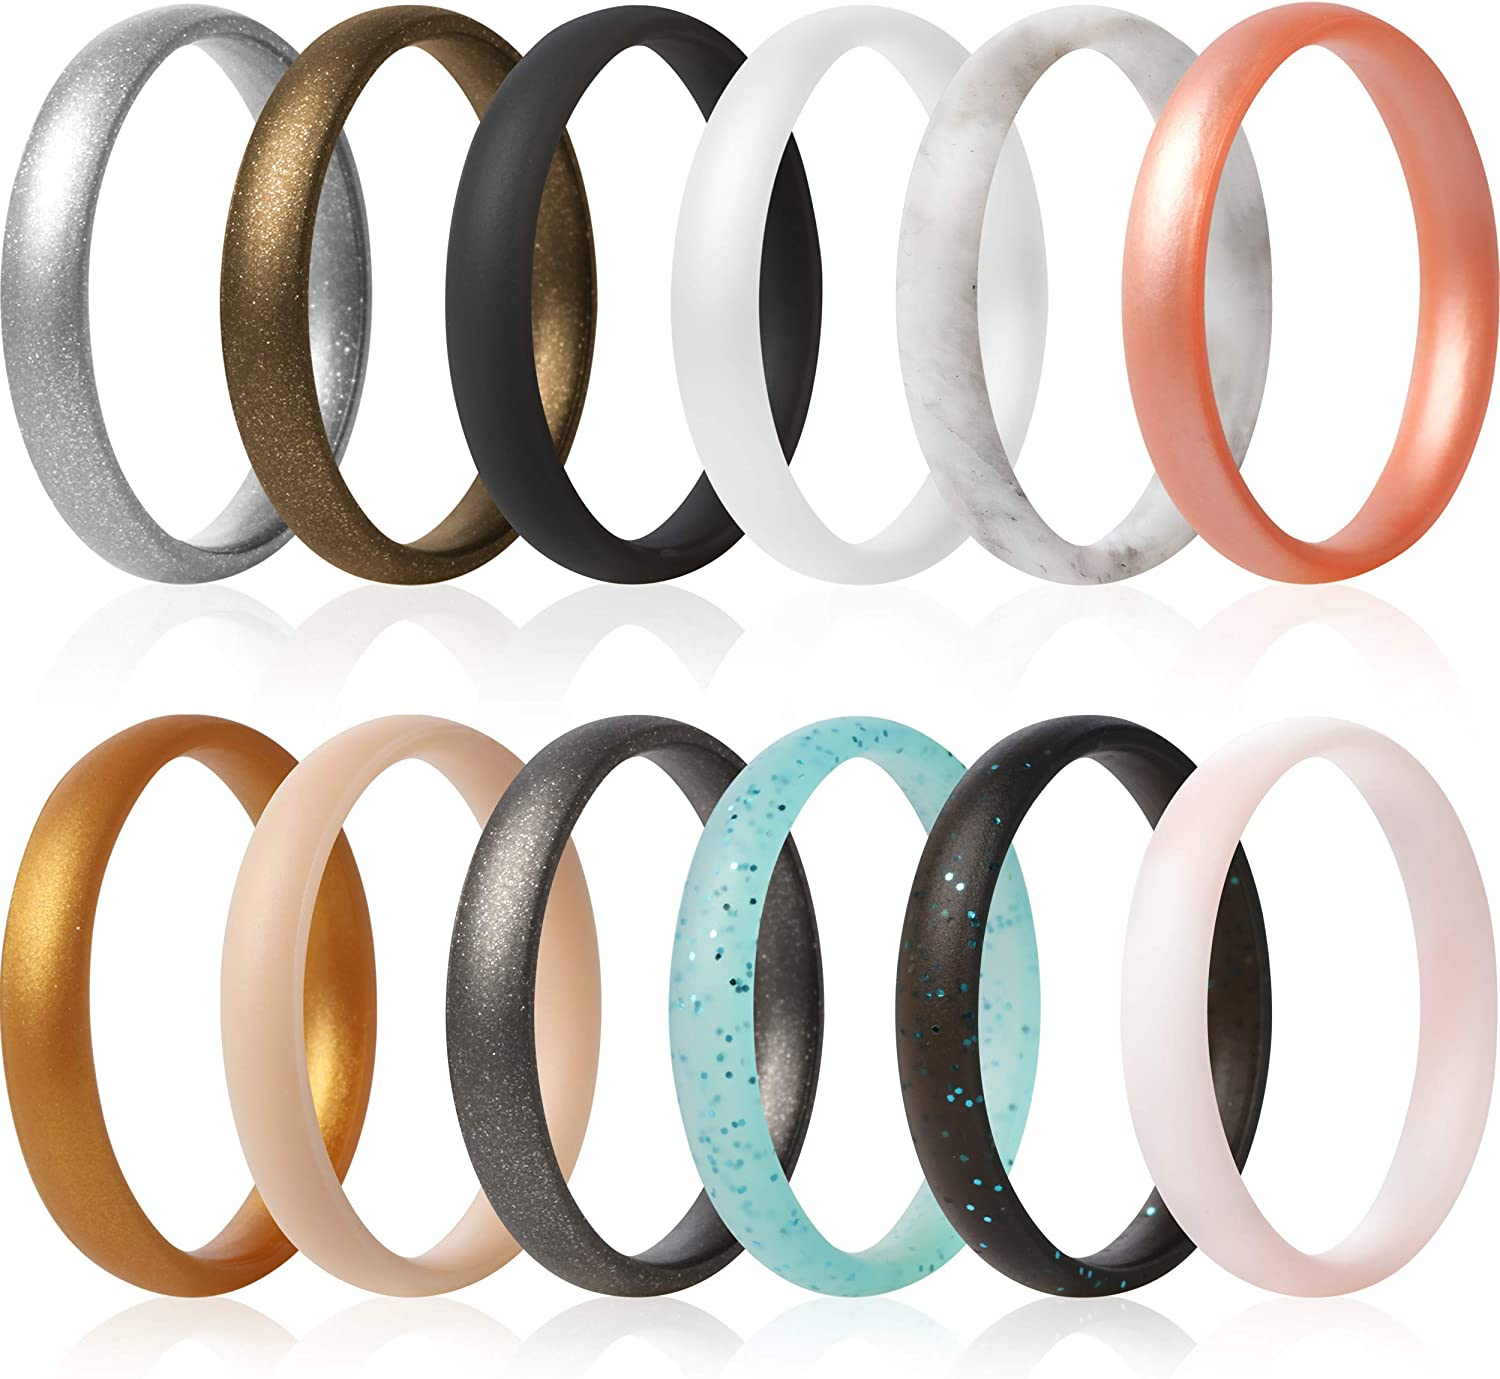 ThunderFit Super Thin Stackable Max 87% OFF Silicone Wedding Rings - 1 Bands Excellence